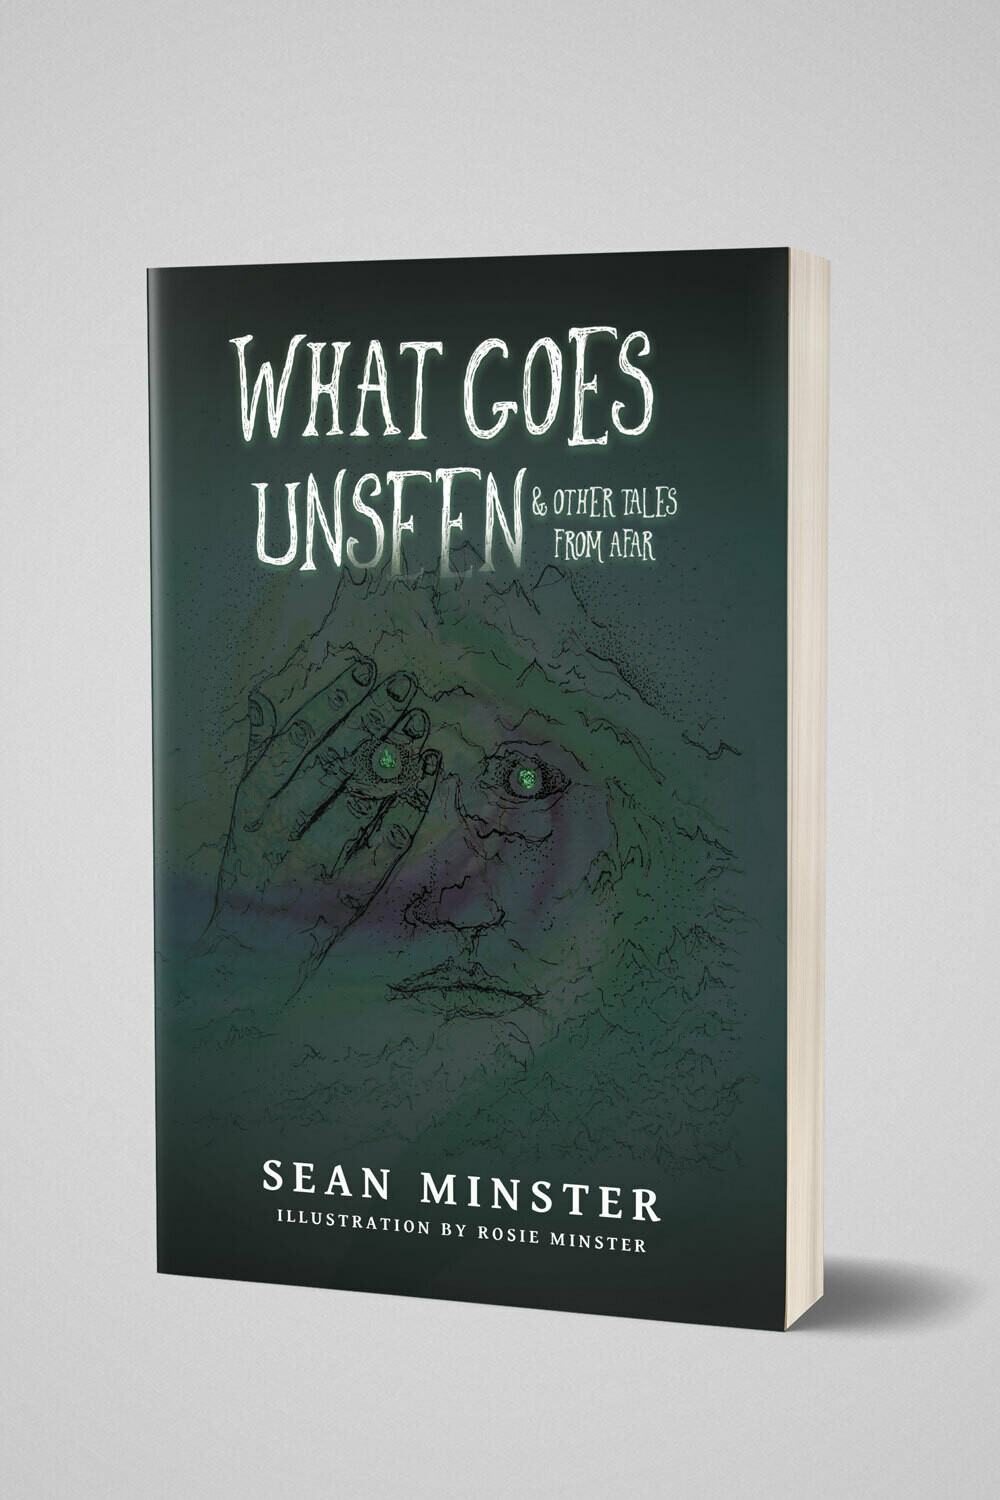 What Goes Unseen & Other Tales From Afar